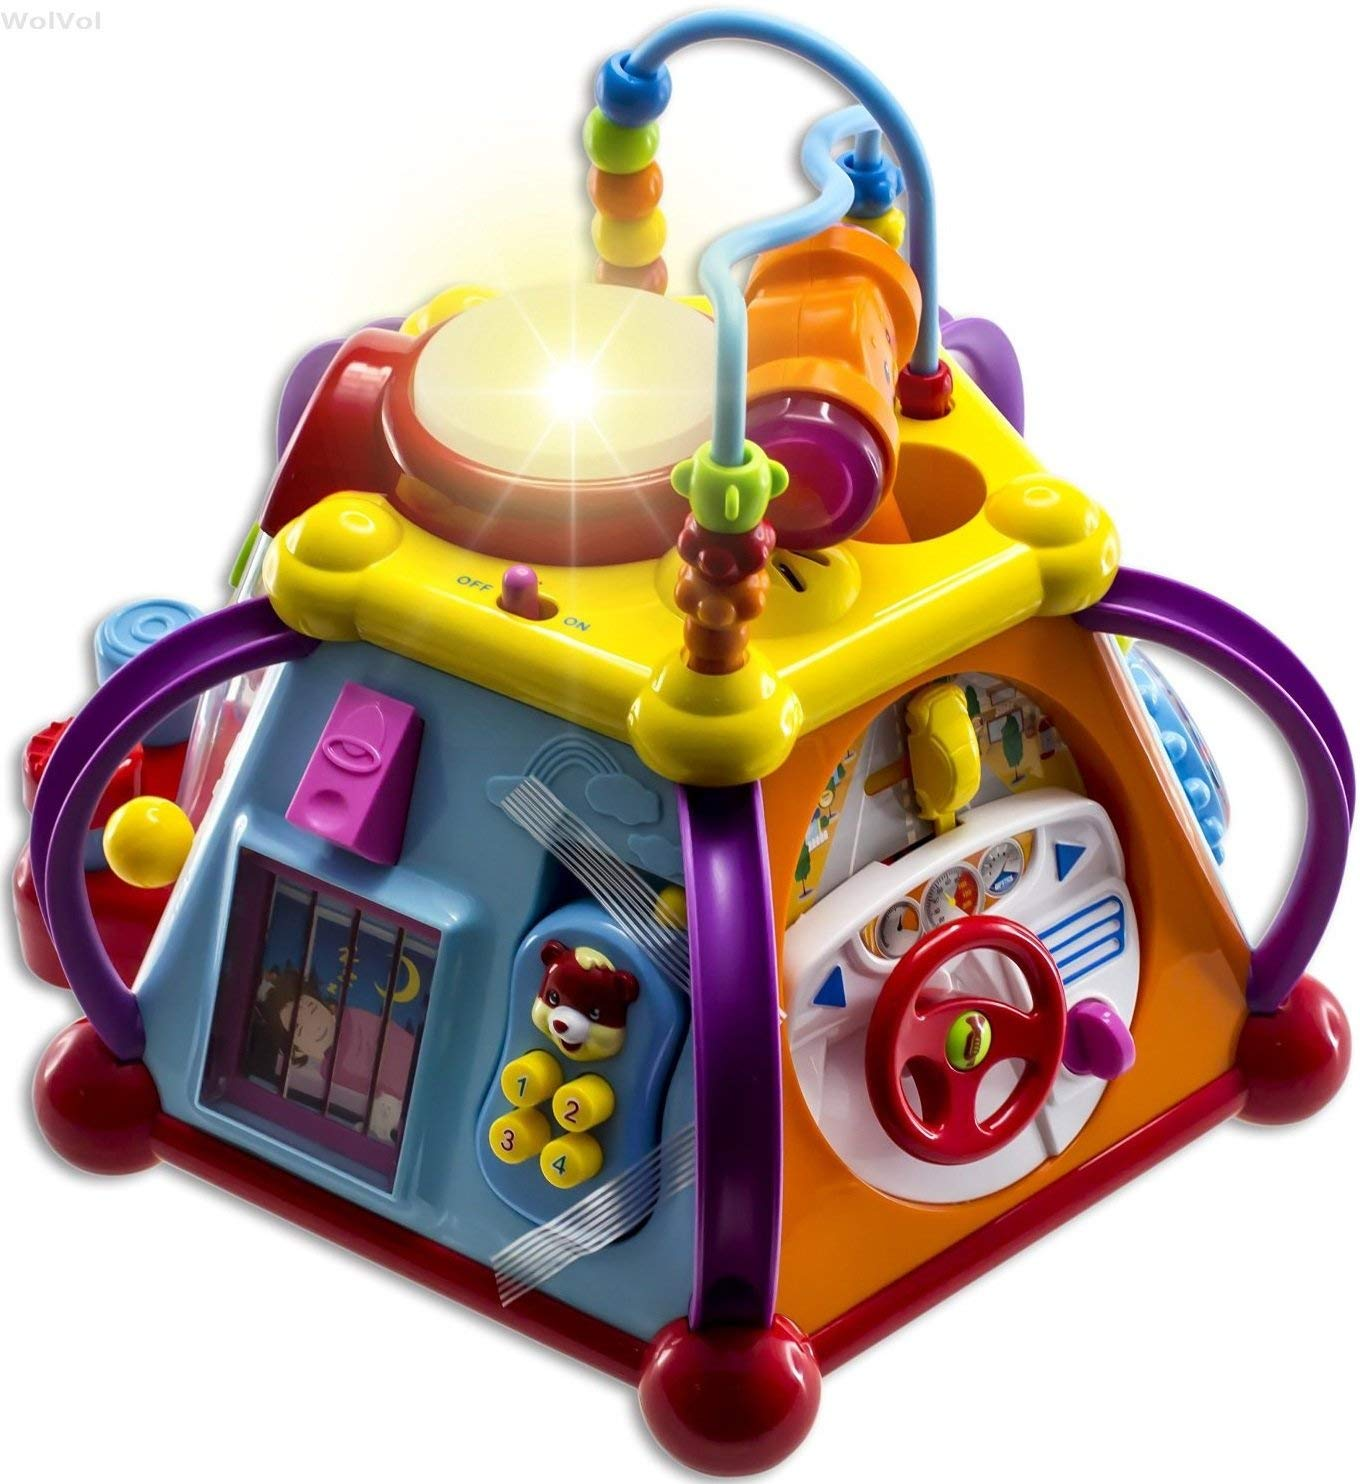 WolVol Educational Kids Toddler Baby Toy Musical Activity Cube review